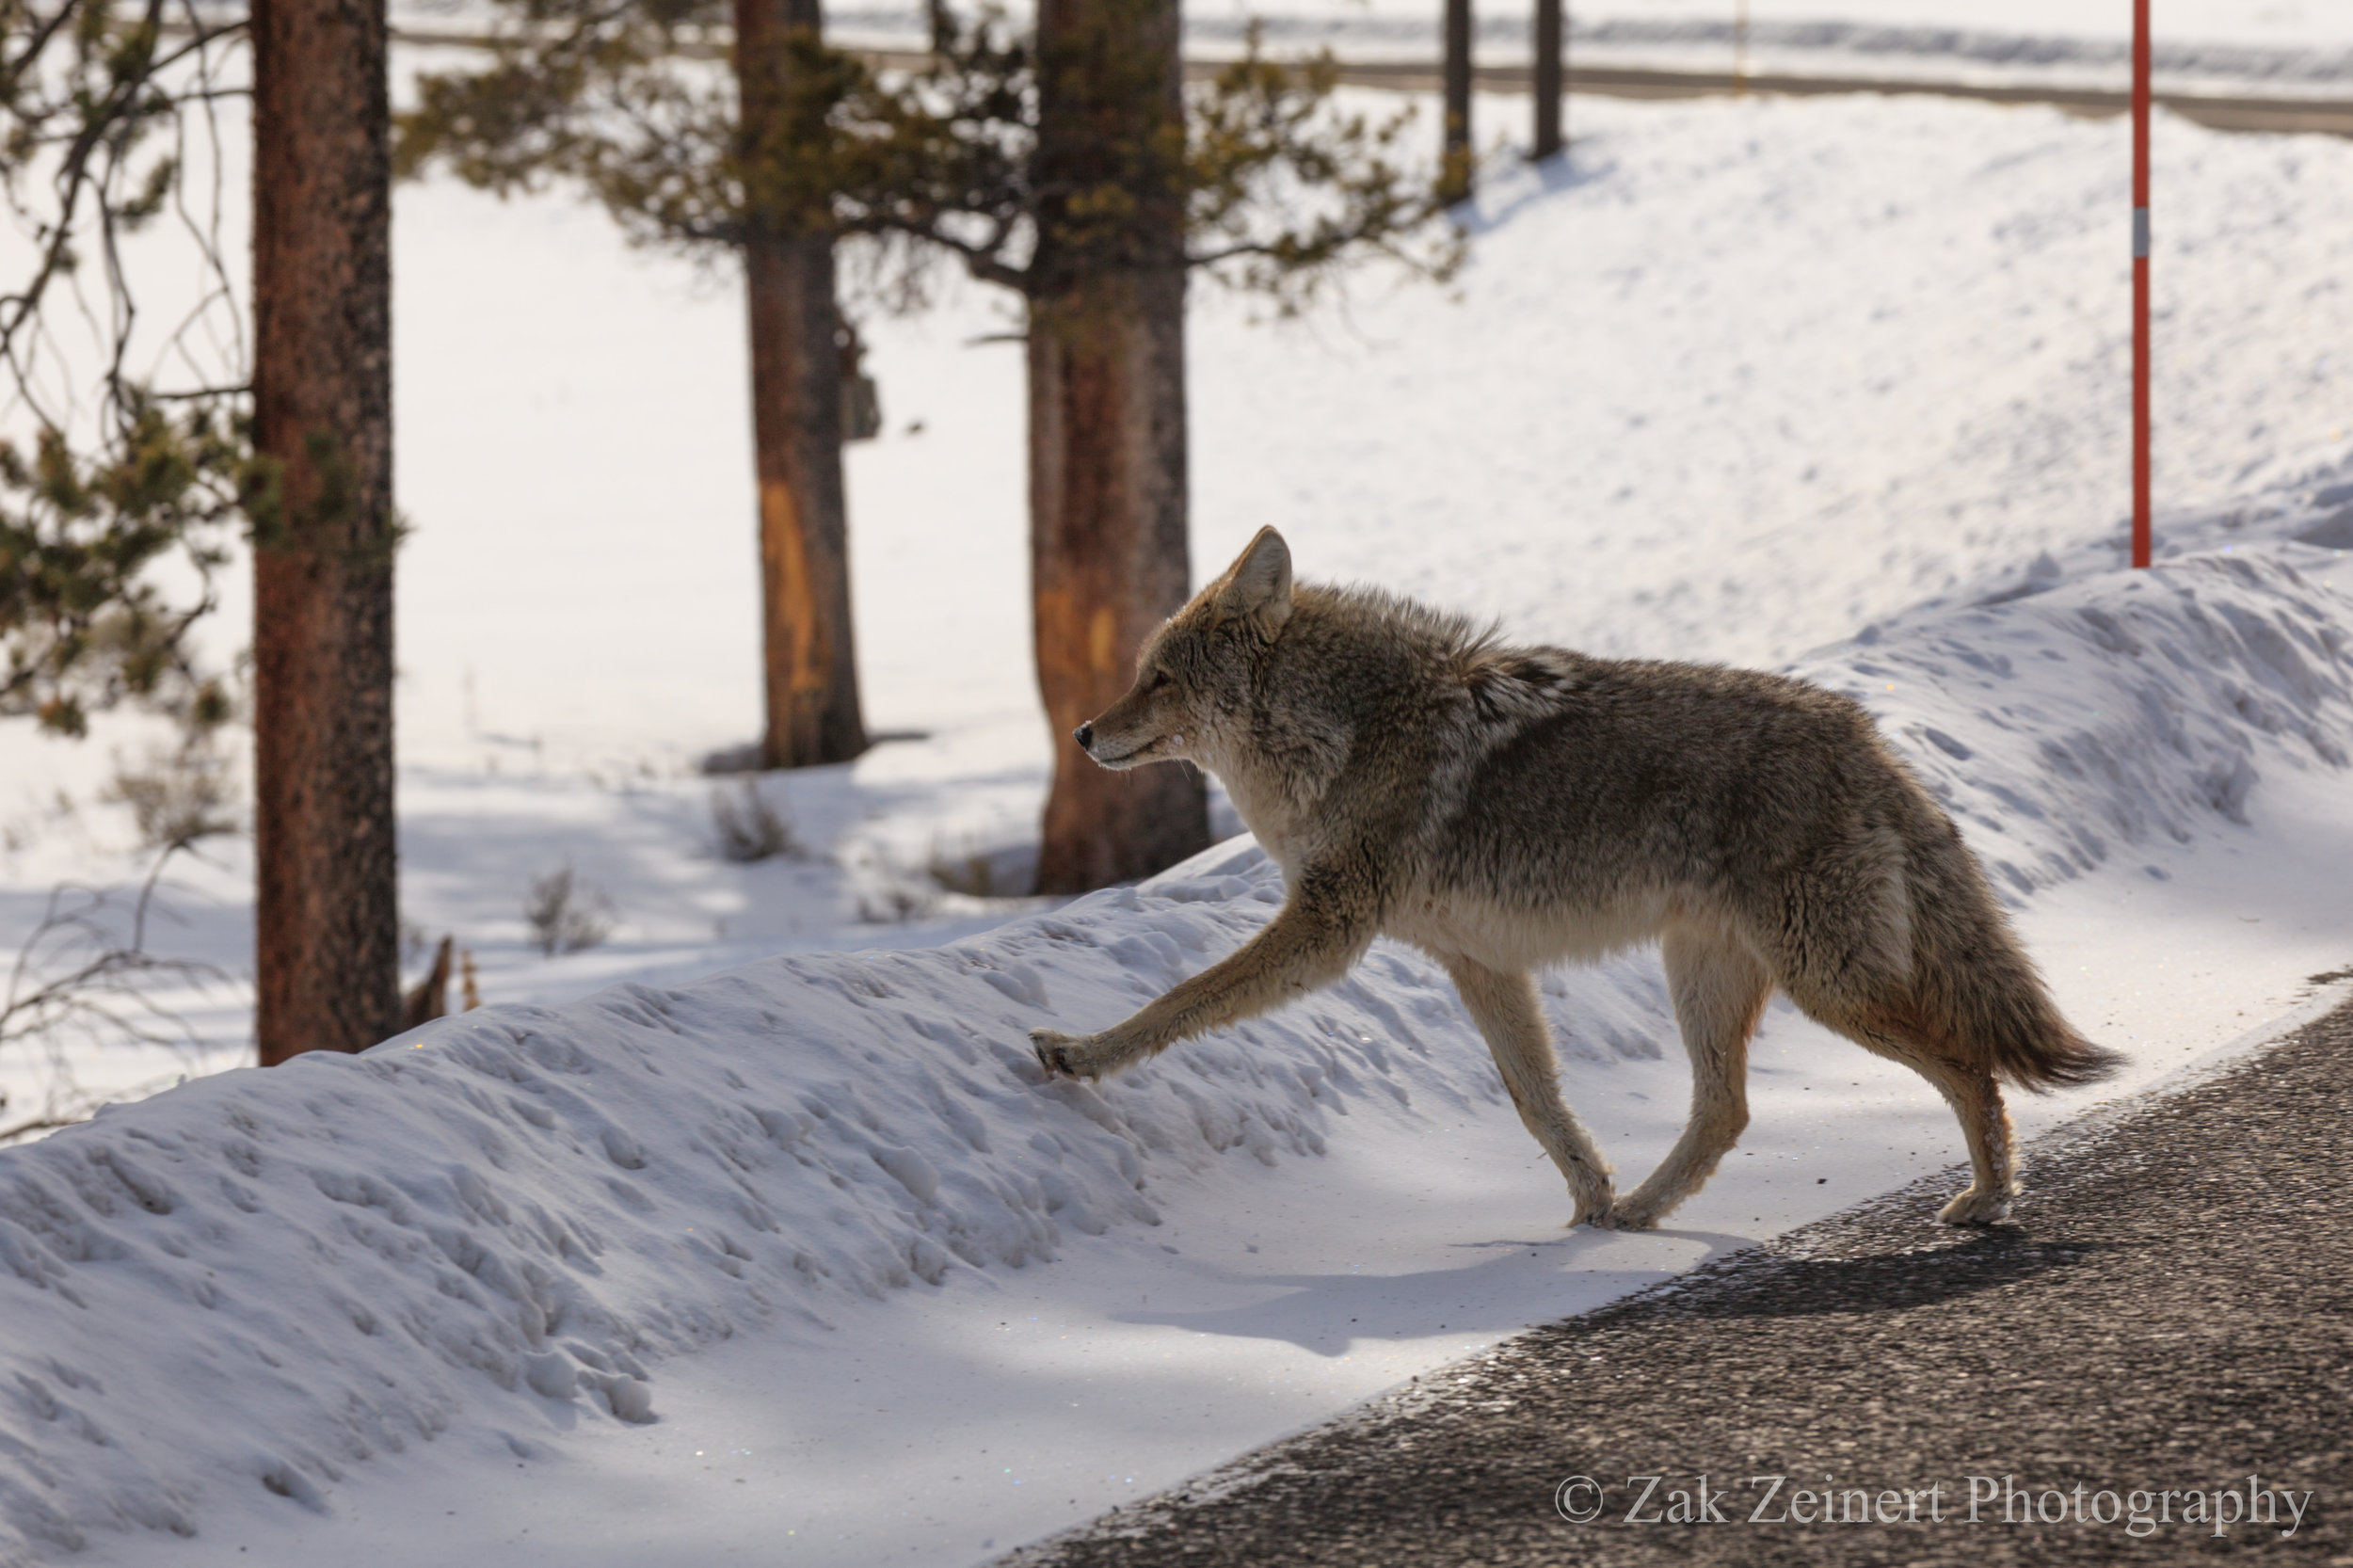 Coyote or wolf?